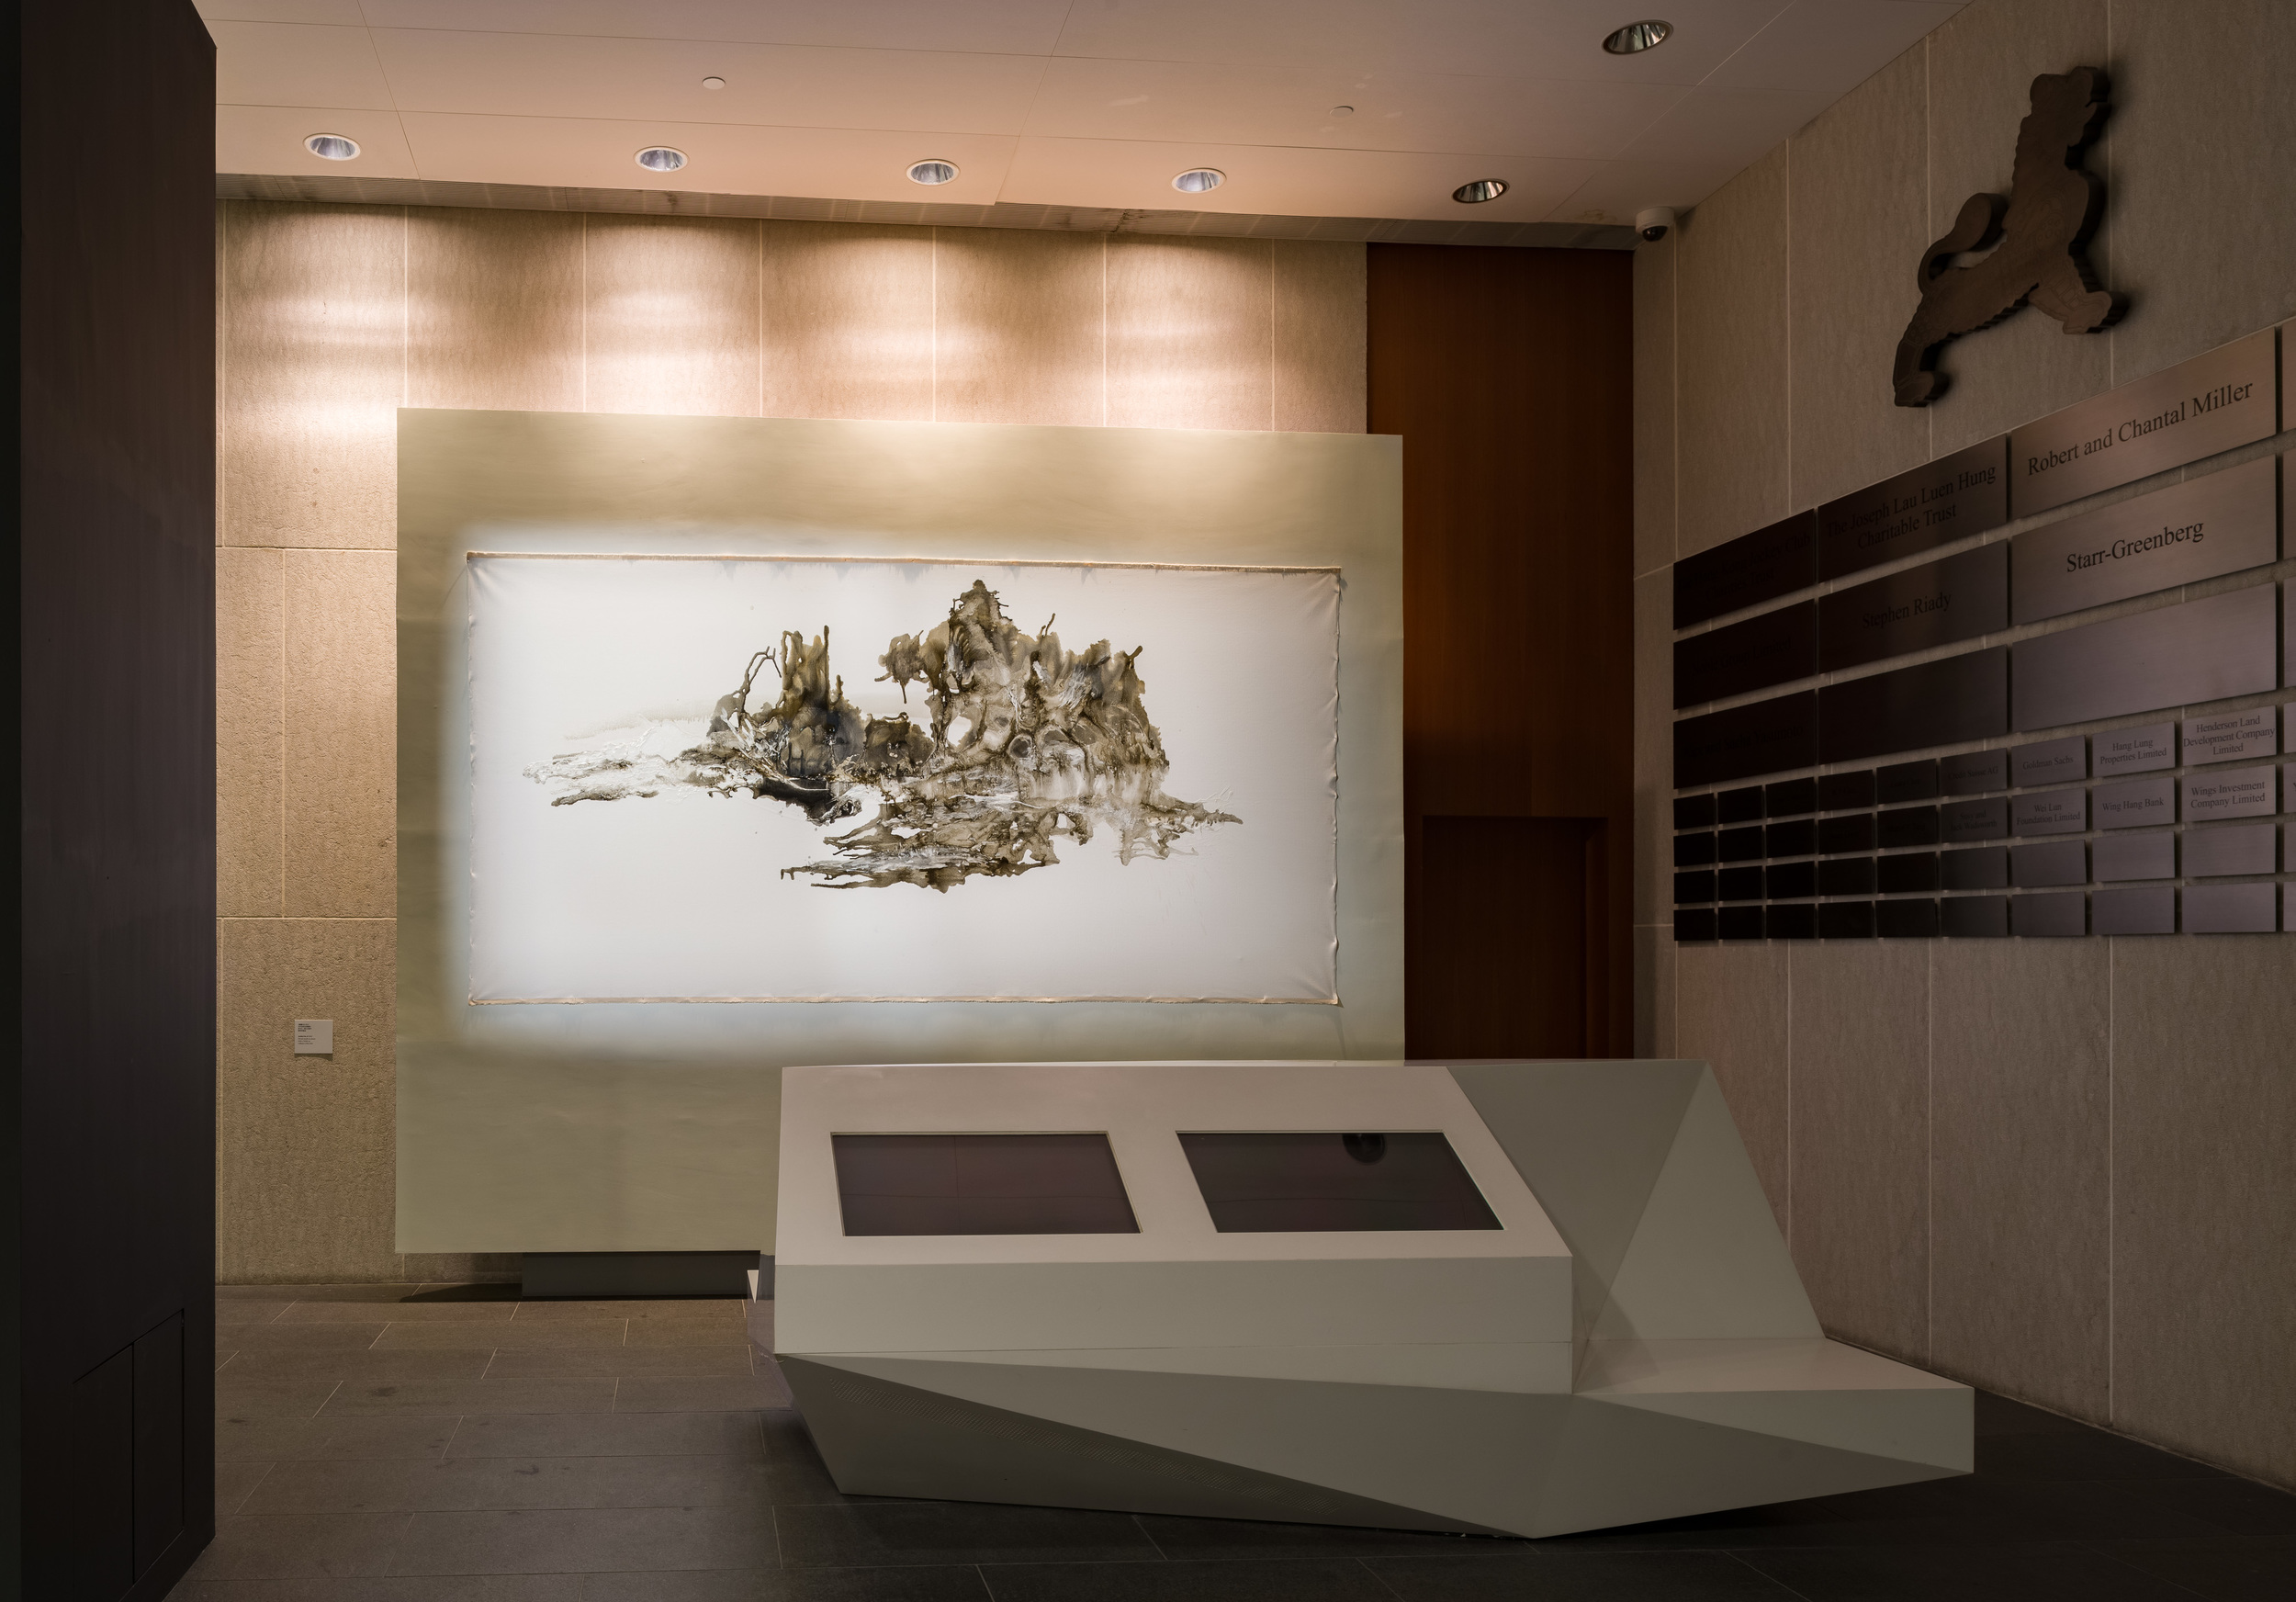 ASHK Shen Wei Exhibition-D8C_3571-HDR-Edit.jpg